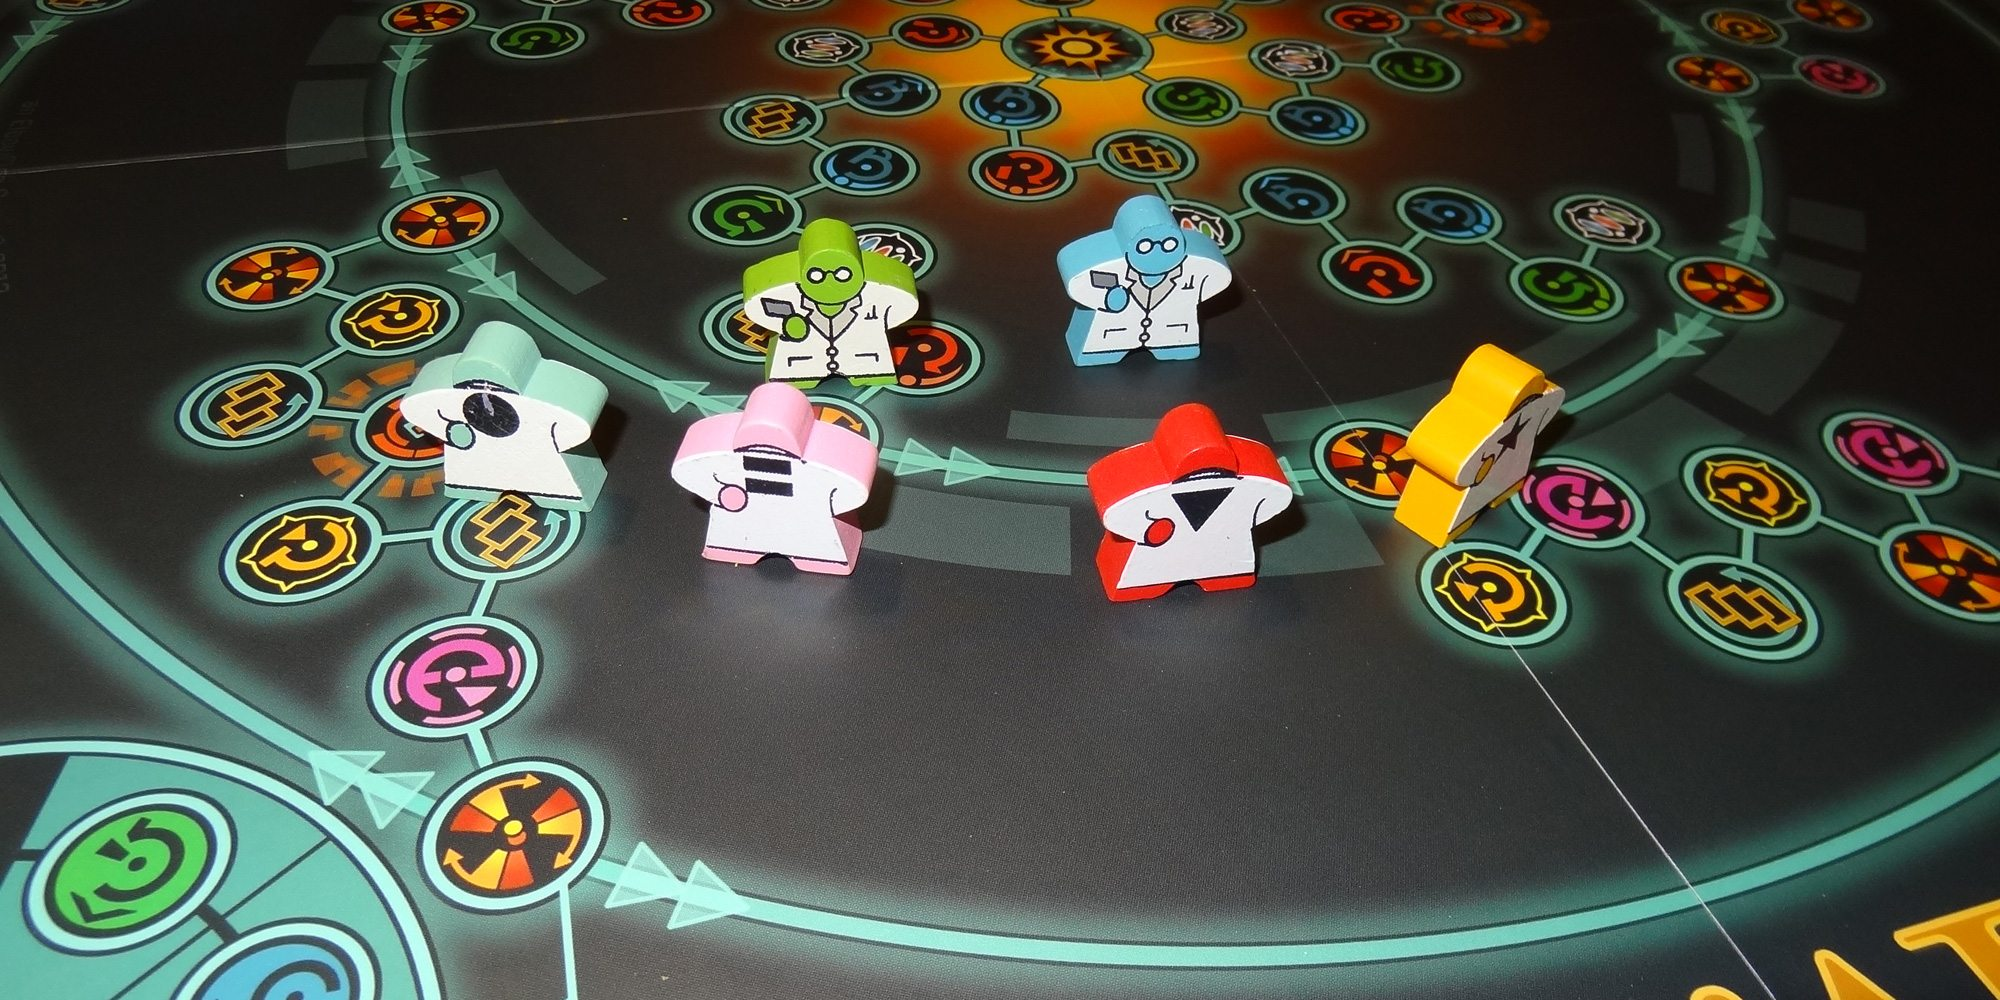 Antimatter Matters scientist meeples